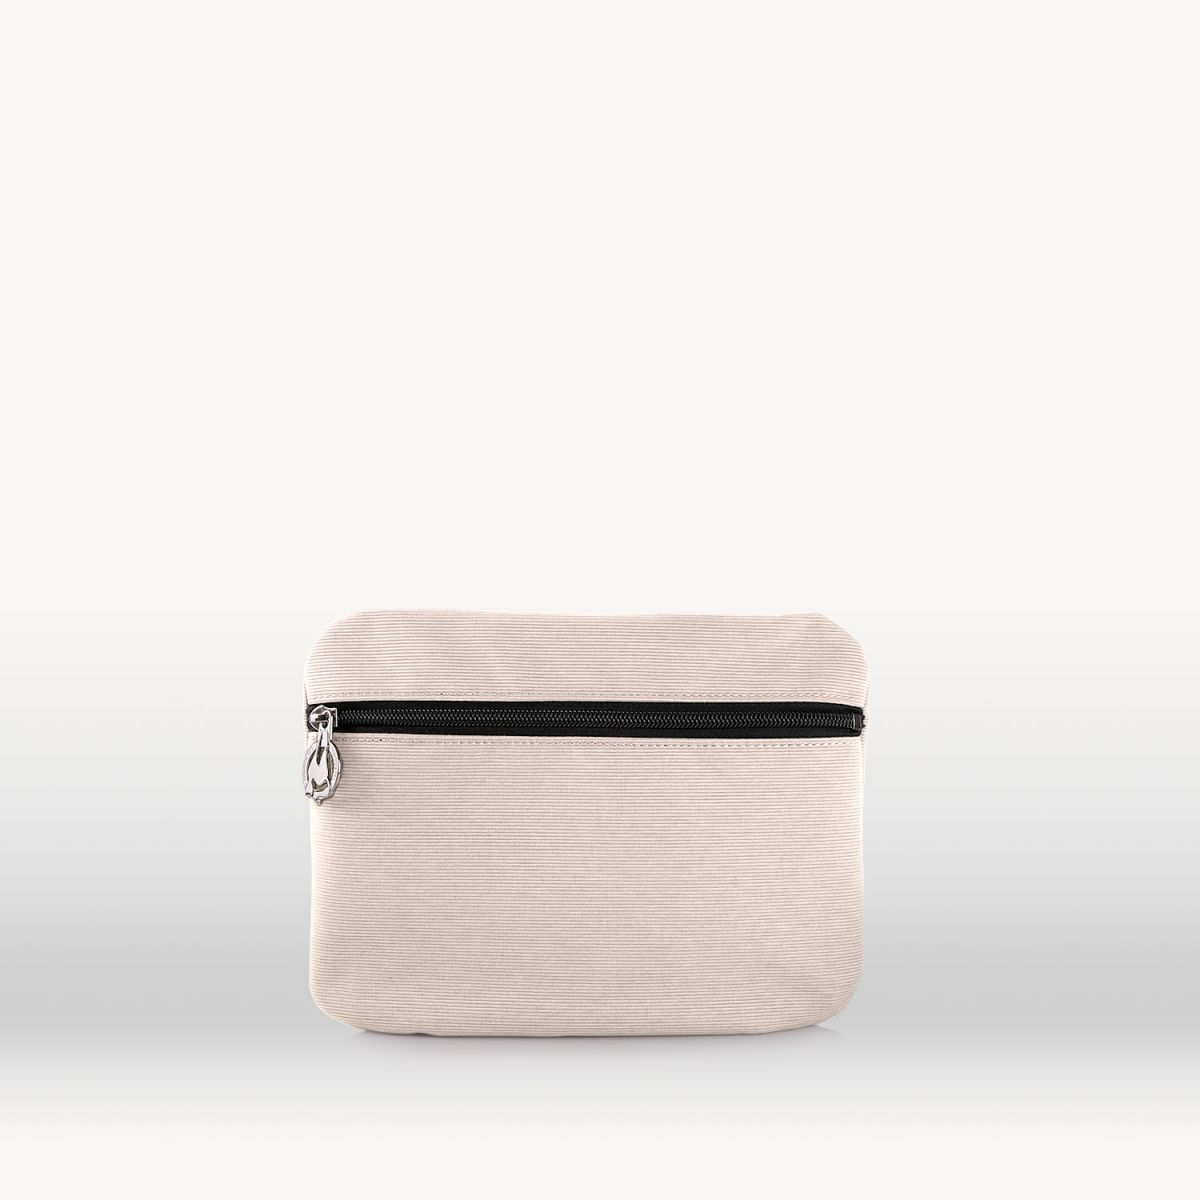 Pochette additionnelle Grège